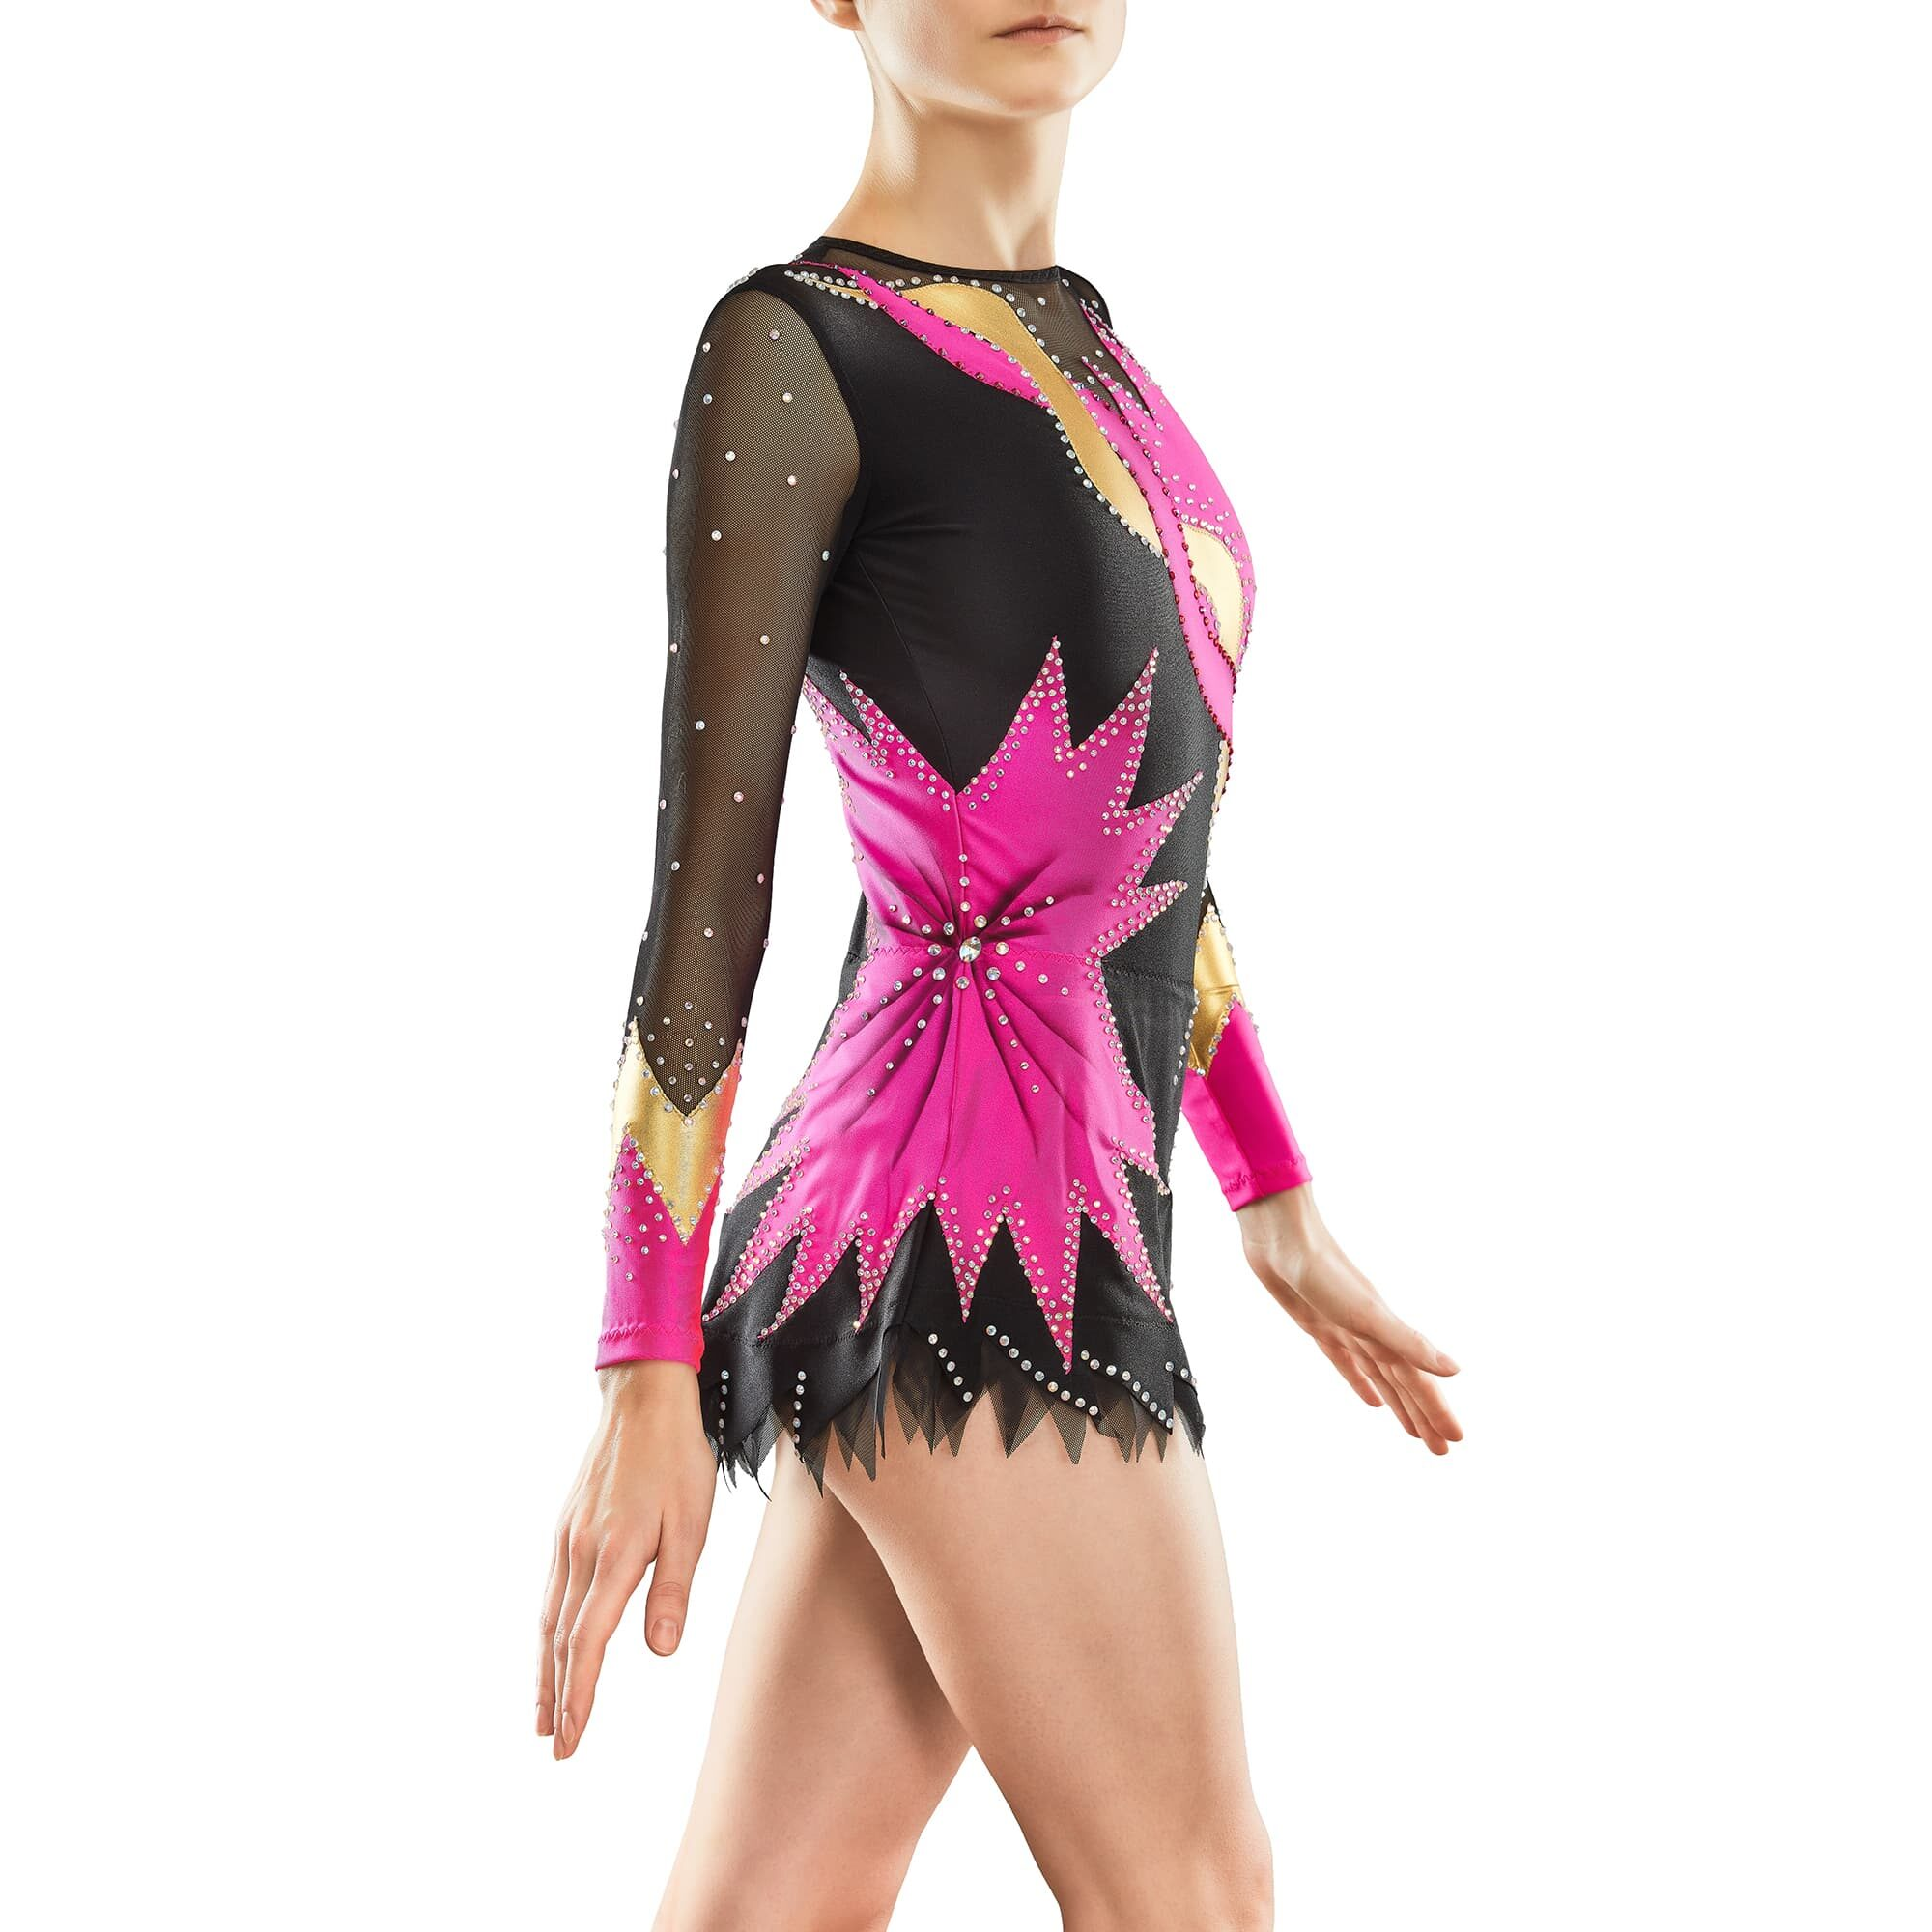 Fuchsia, black, gold, black mesh Rhythmic Gymnastics Leotard 82 for competitions